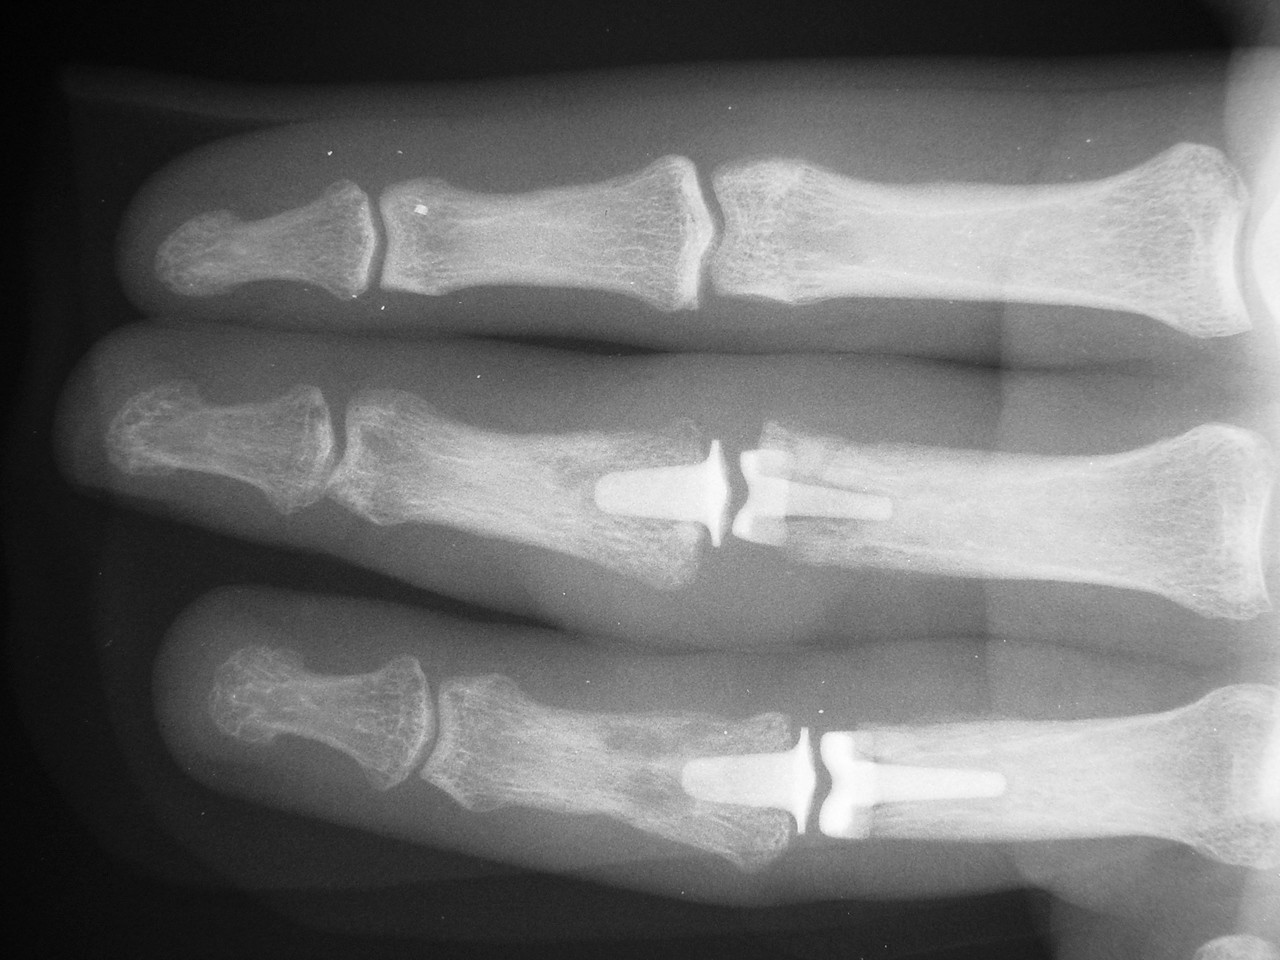 Reconstruction: Pyrolytic carbon proximal interphalangeal ...